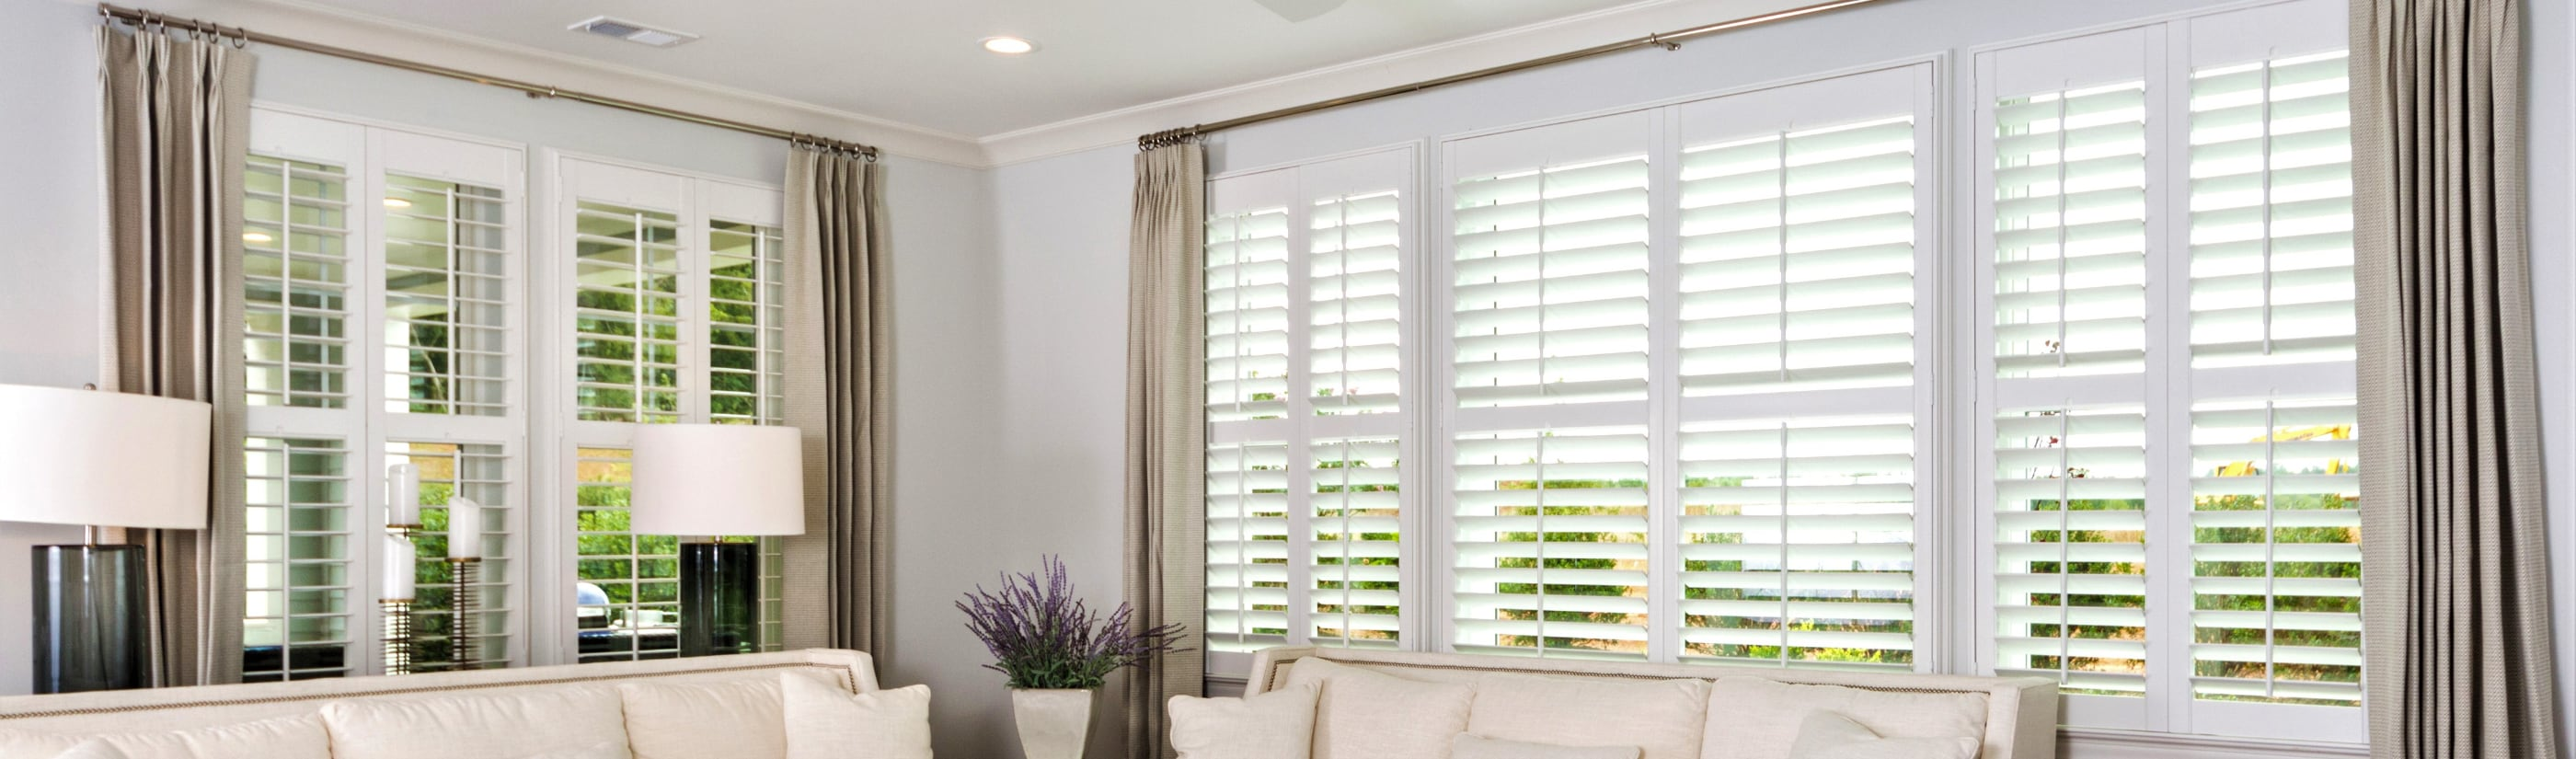 Polywood Shutters Paints In Denver